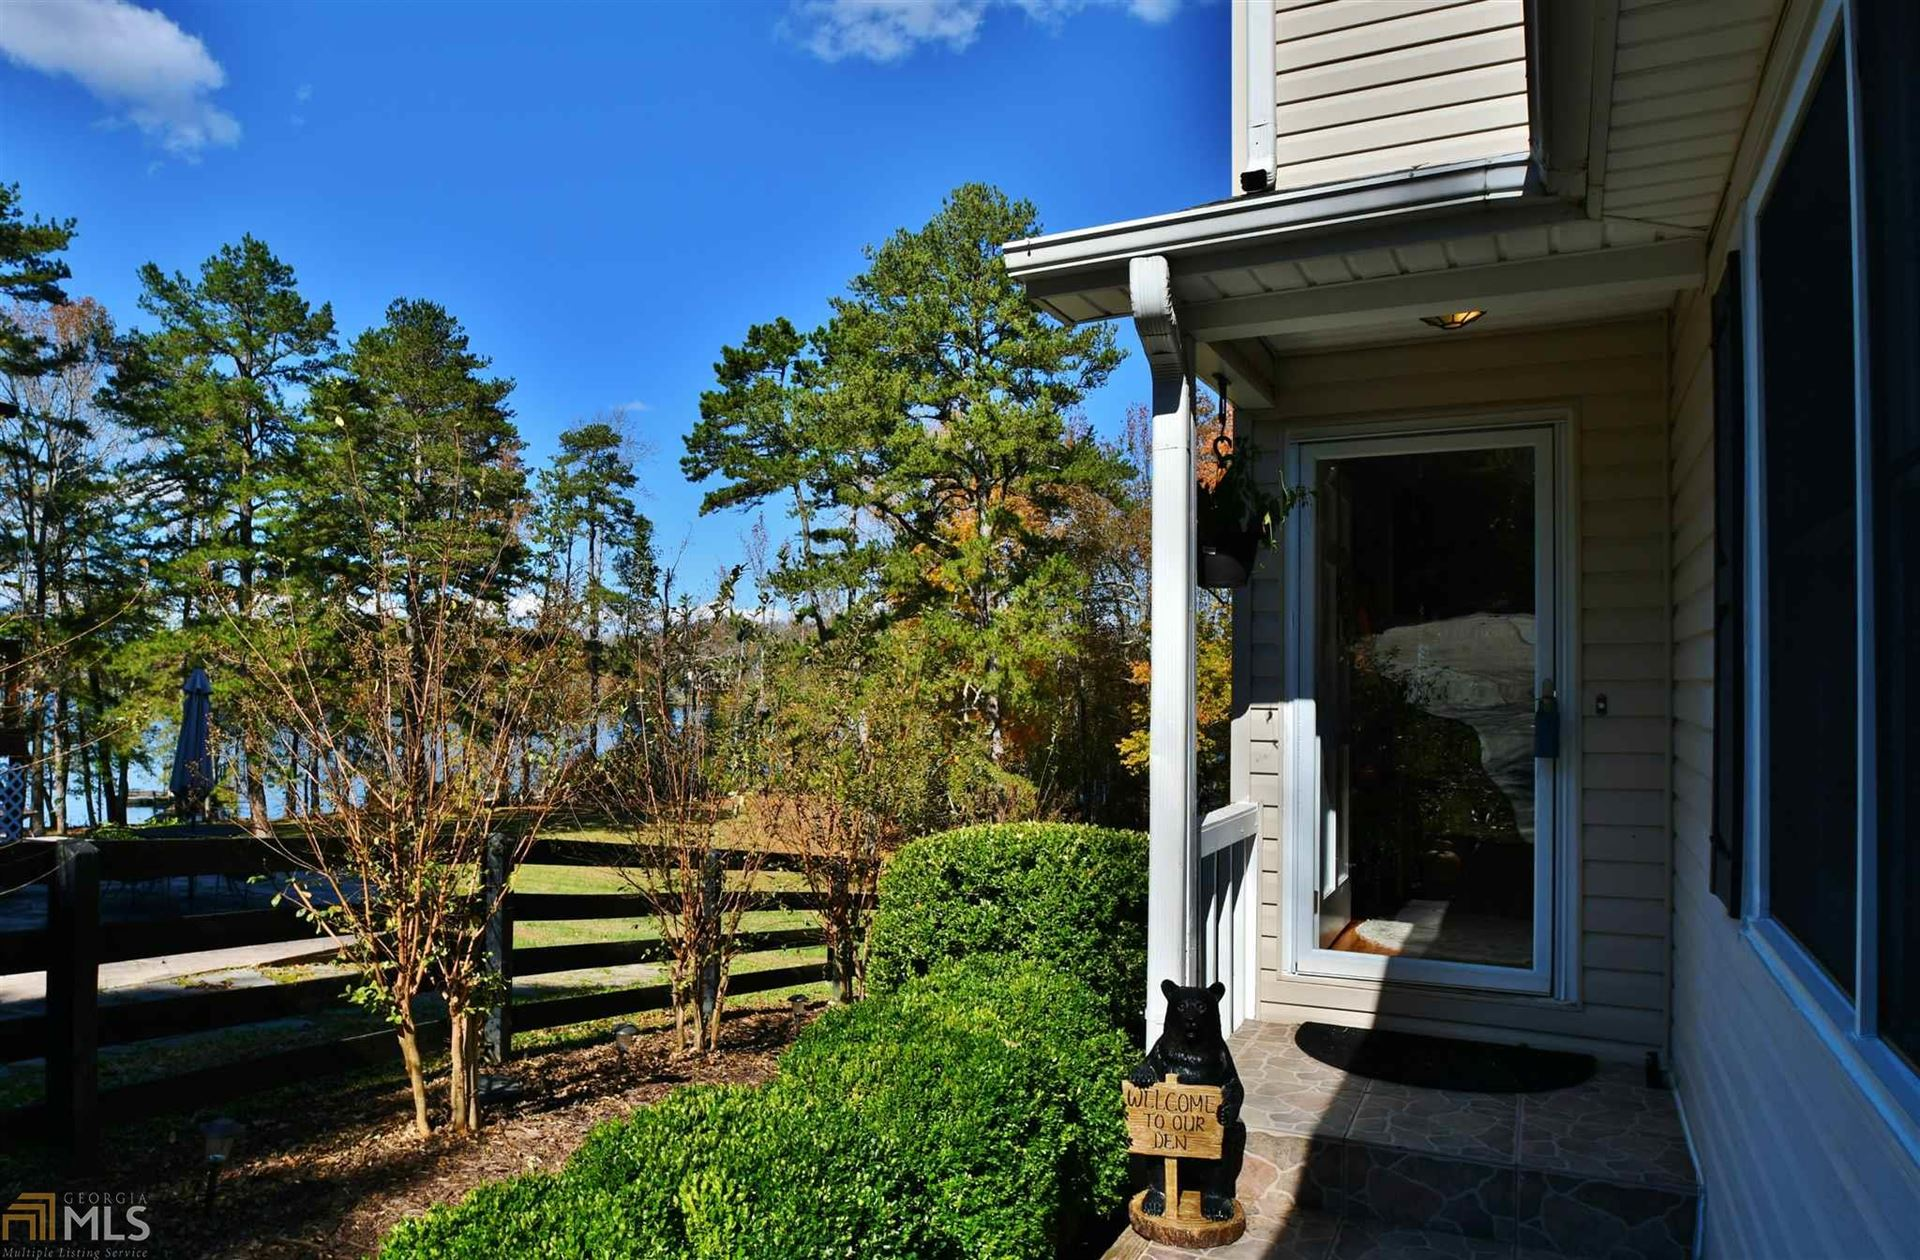 86 Admirals Point Cir, Dawsonville, GA 30534 - MLS#: 8878514